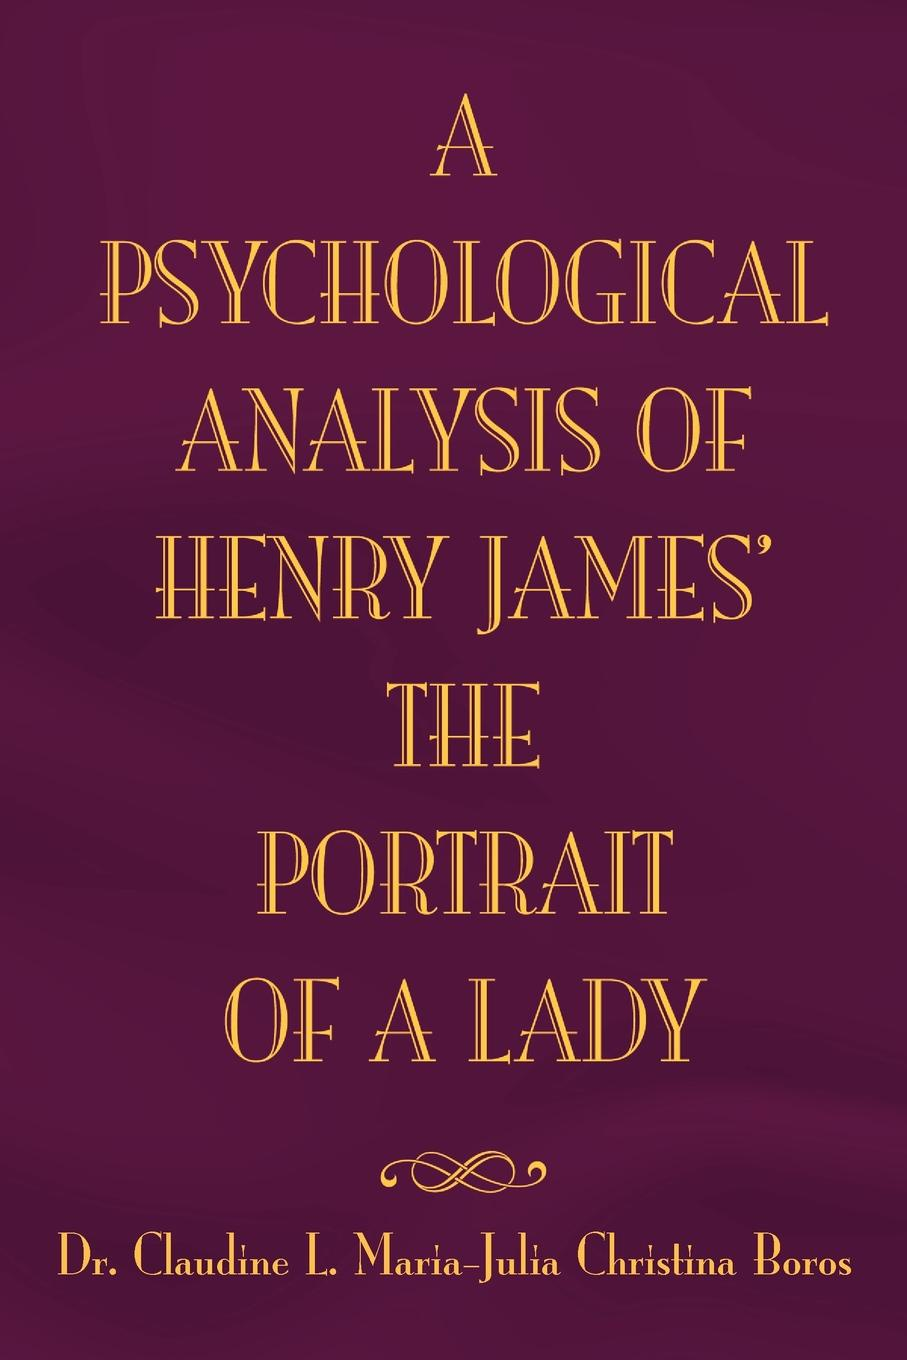 Claudine L. Maria, Dr Claudine L. Maria Julia Boros The Psychological Analysis of Henry James in the Portrait of a Lady